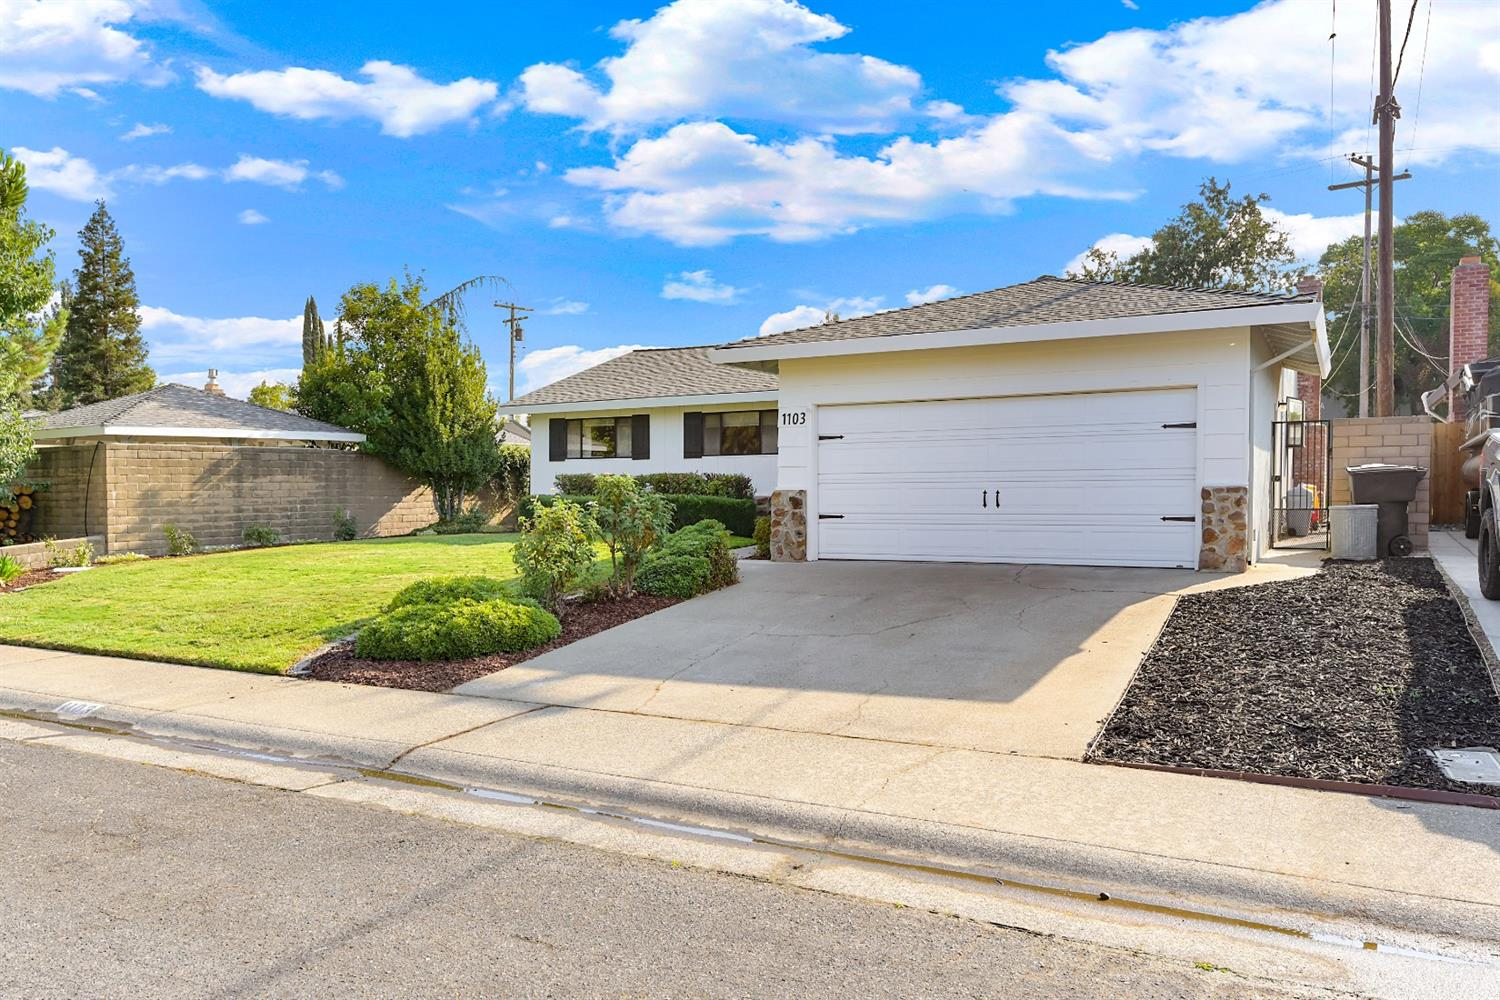 Photo 3 for Listing #221107222